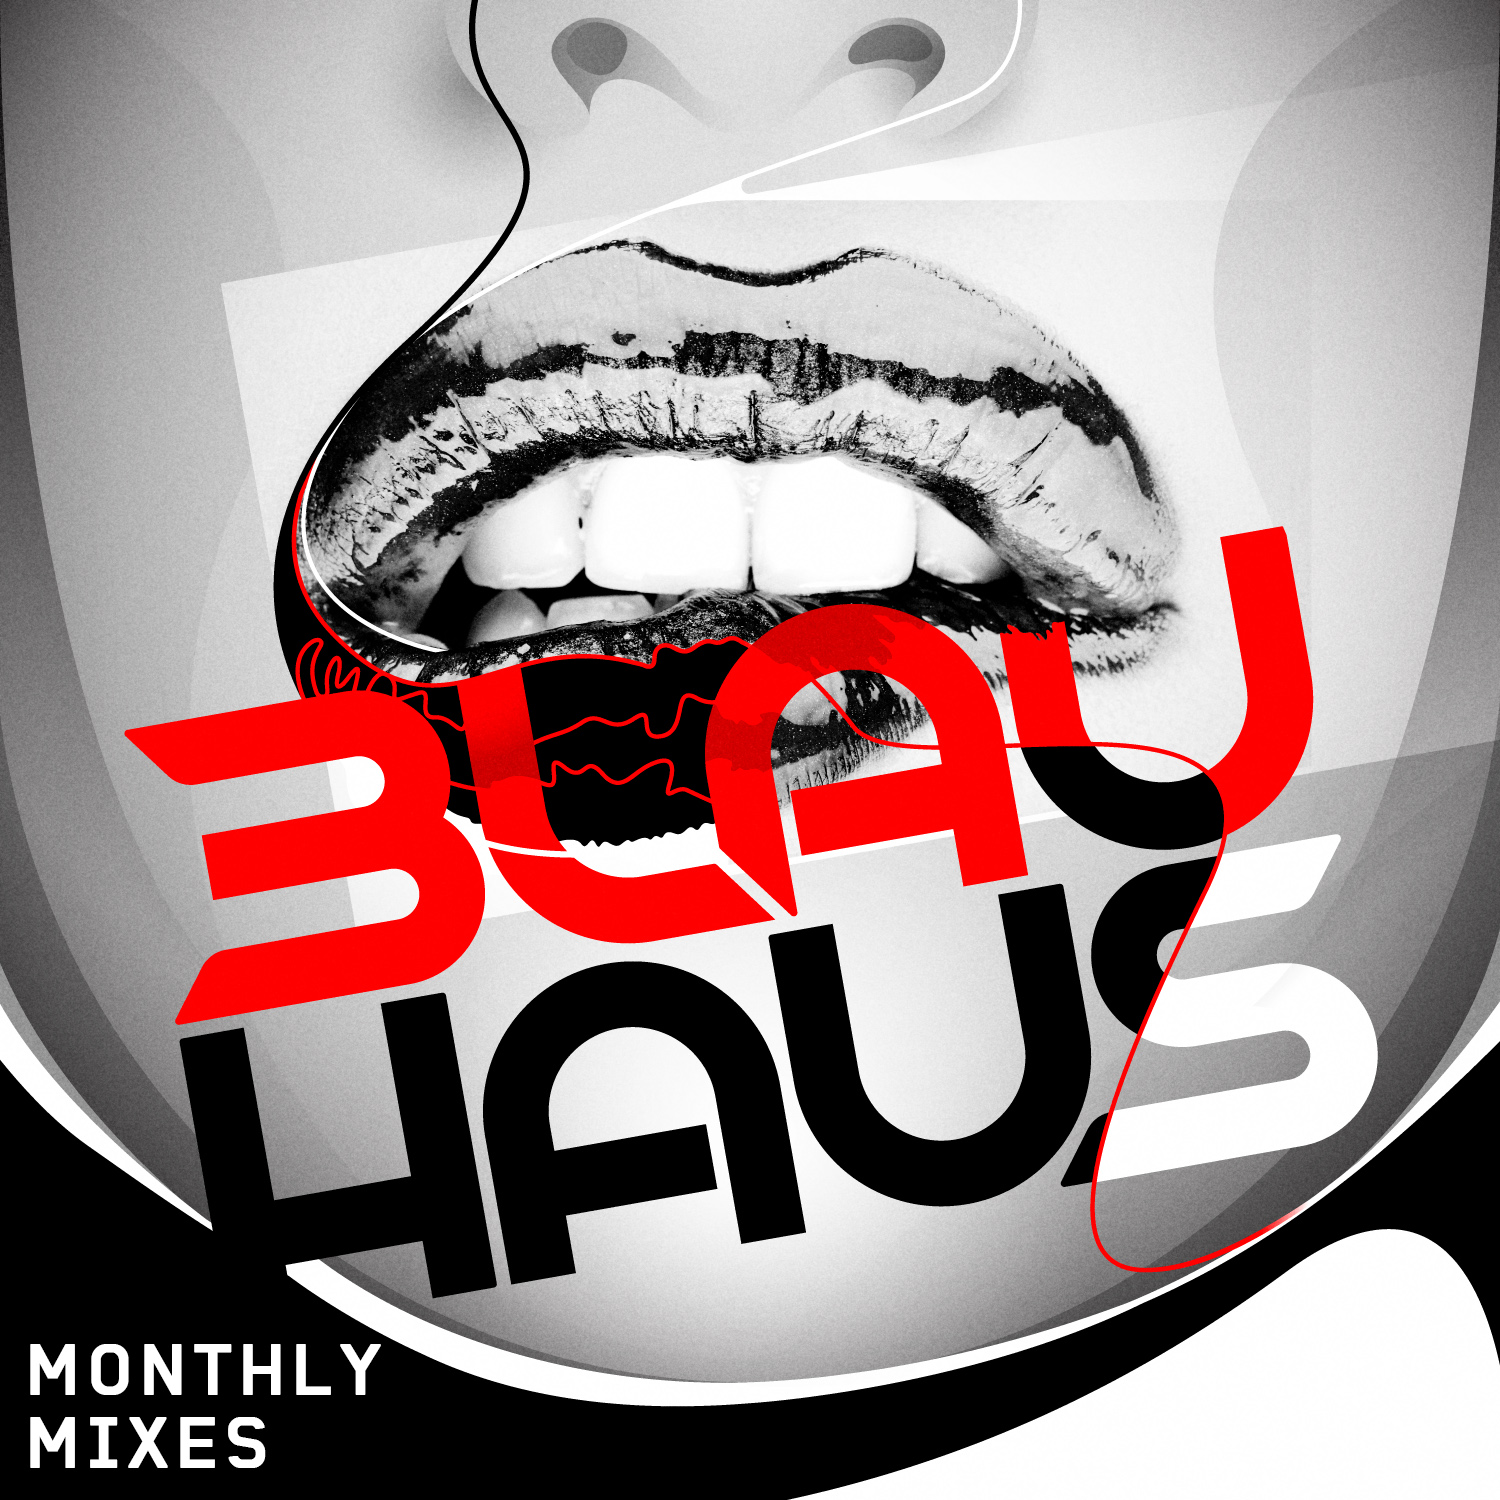 Blohm Haus Pod Fanatic Podcast 3lau Haus Episode 3lau Haus 45 The